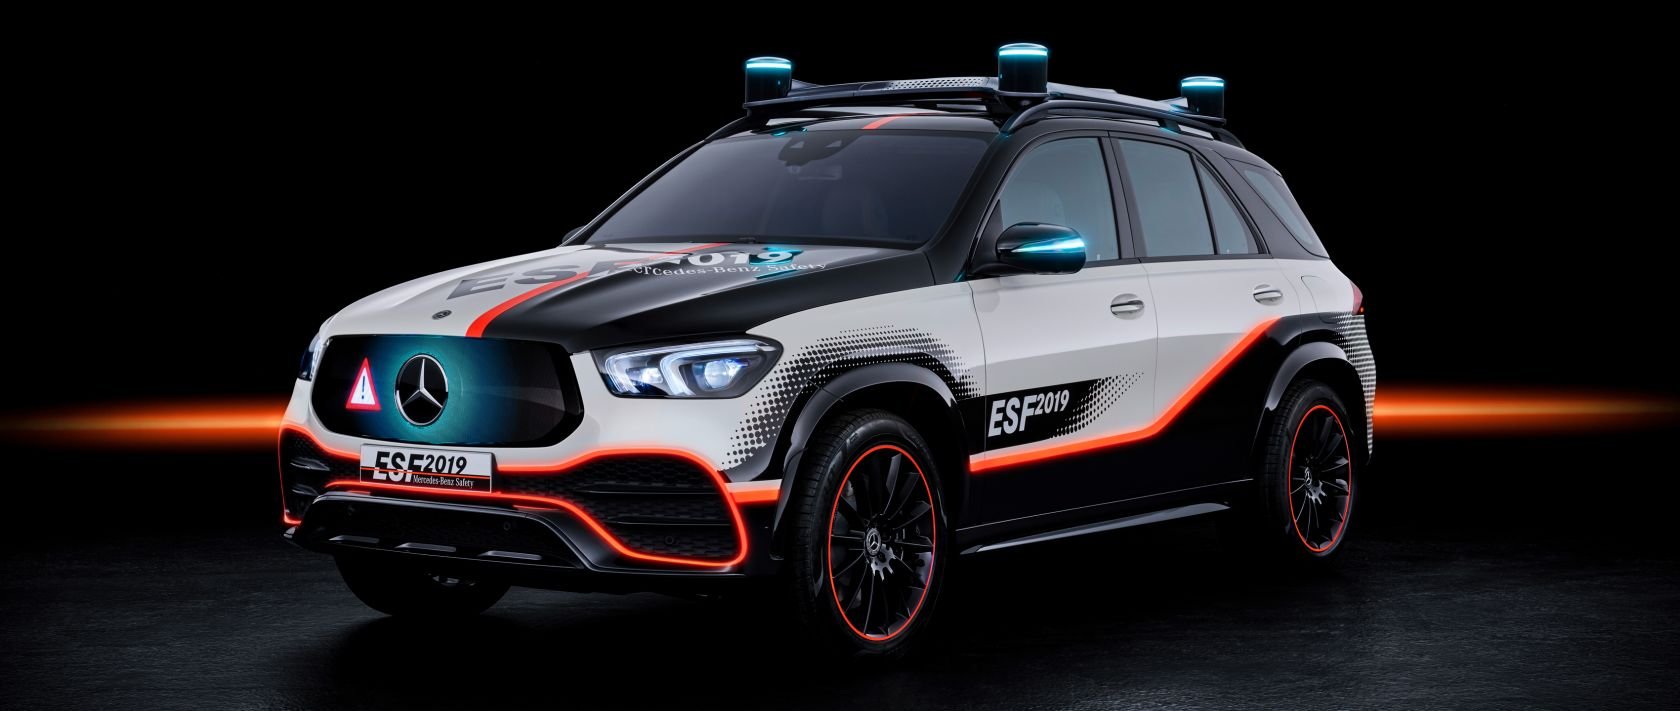 The Mercedes-Benz Experimental Safety Vehicle ESF 2019 based on the GLE.